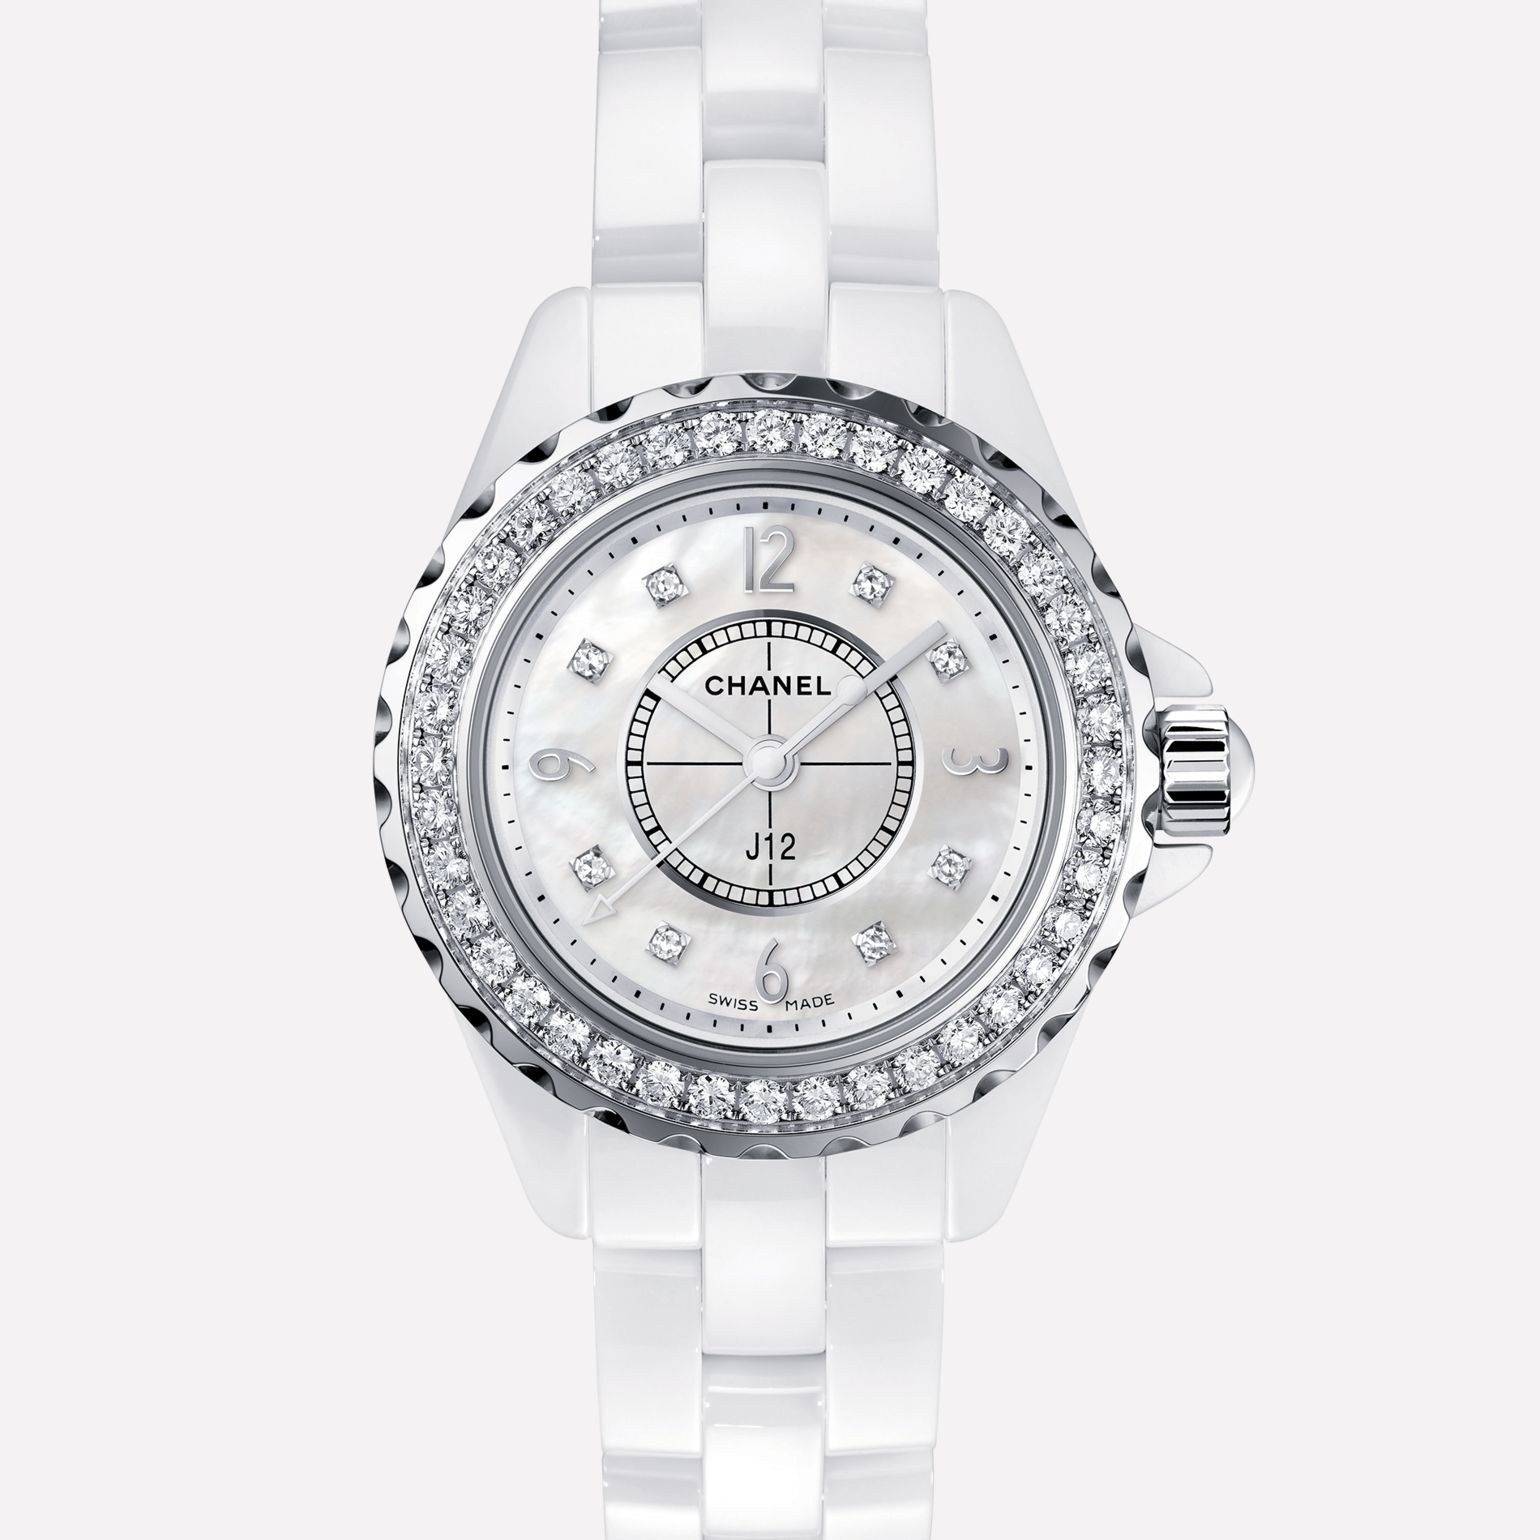 J12 White ceramic and steel, diamond bezel and indicators, mother-of-pearl dial